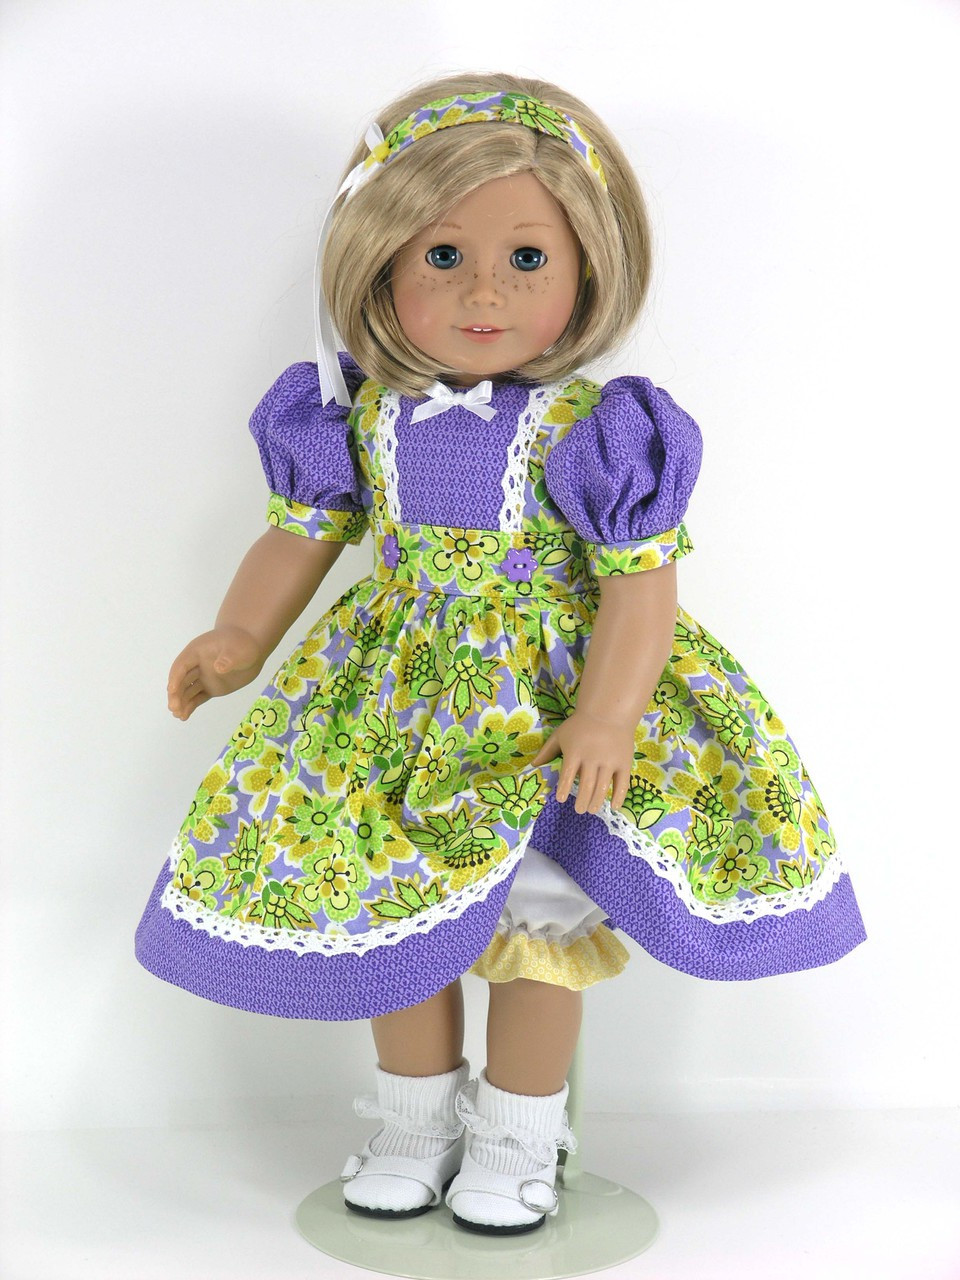 18 Inch doll Clothes LAVENDER SATIN SUN DRESS Made For American Girl Dolls